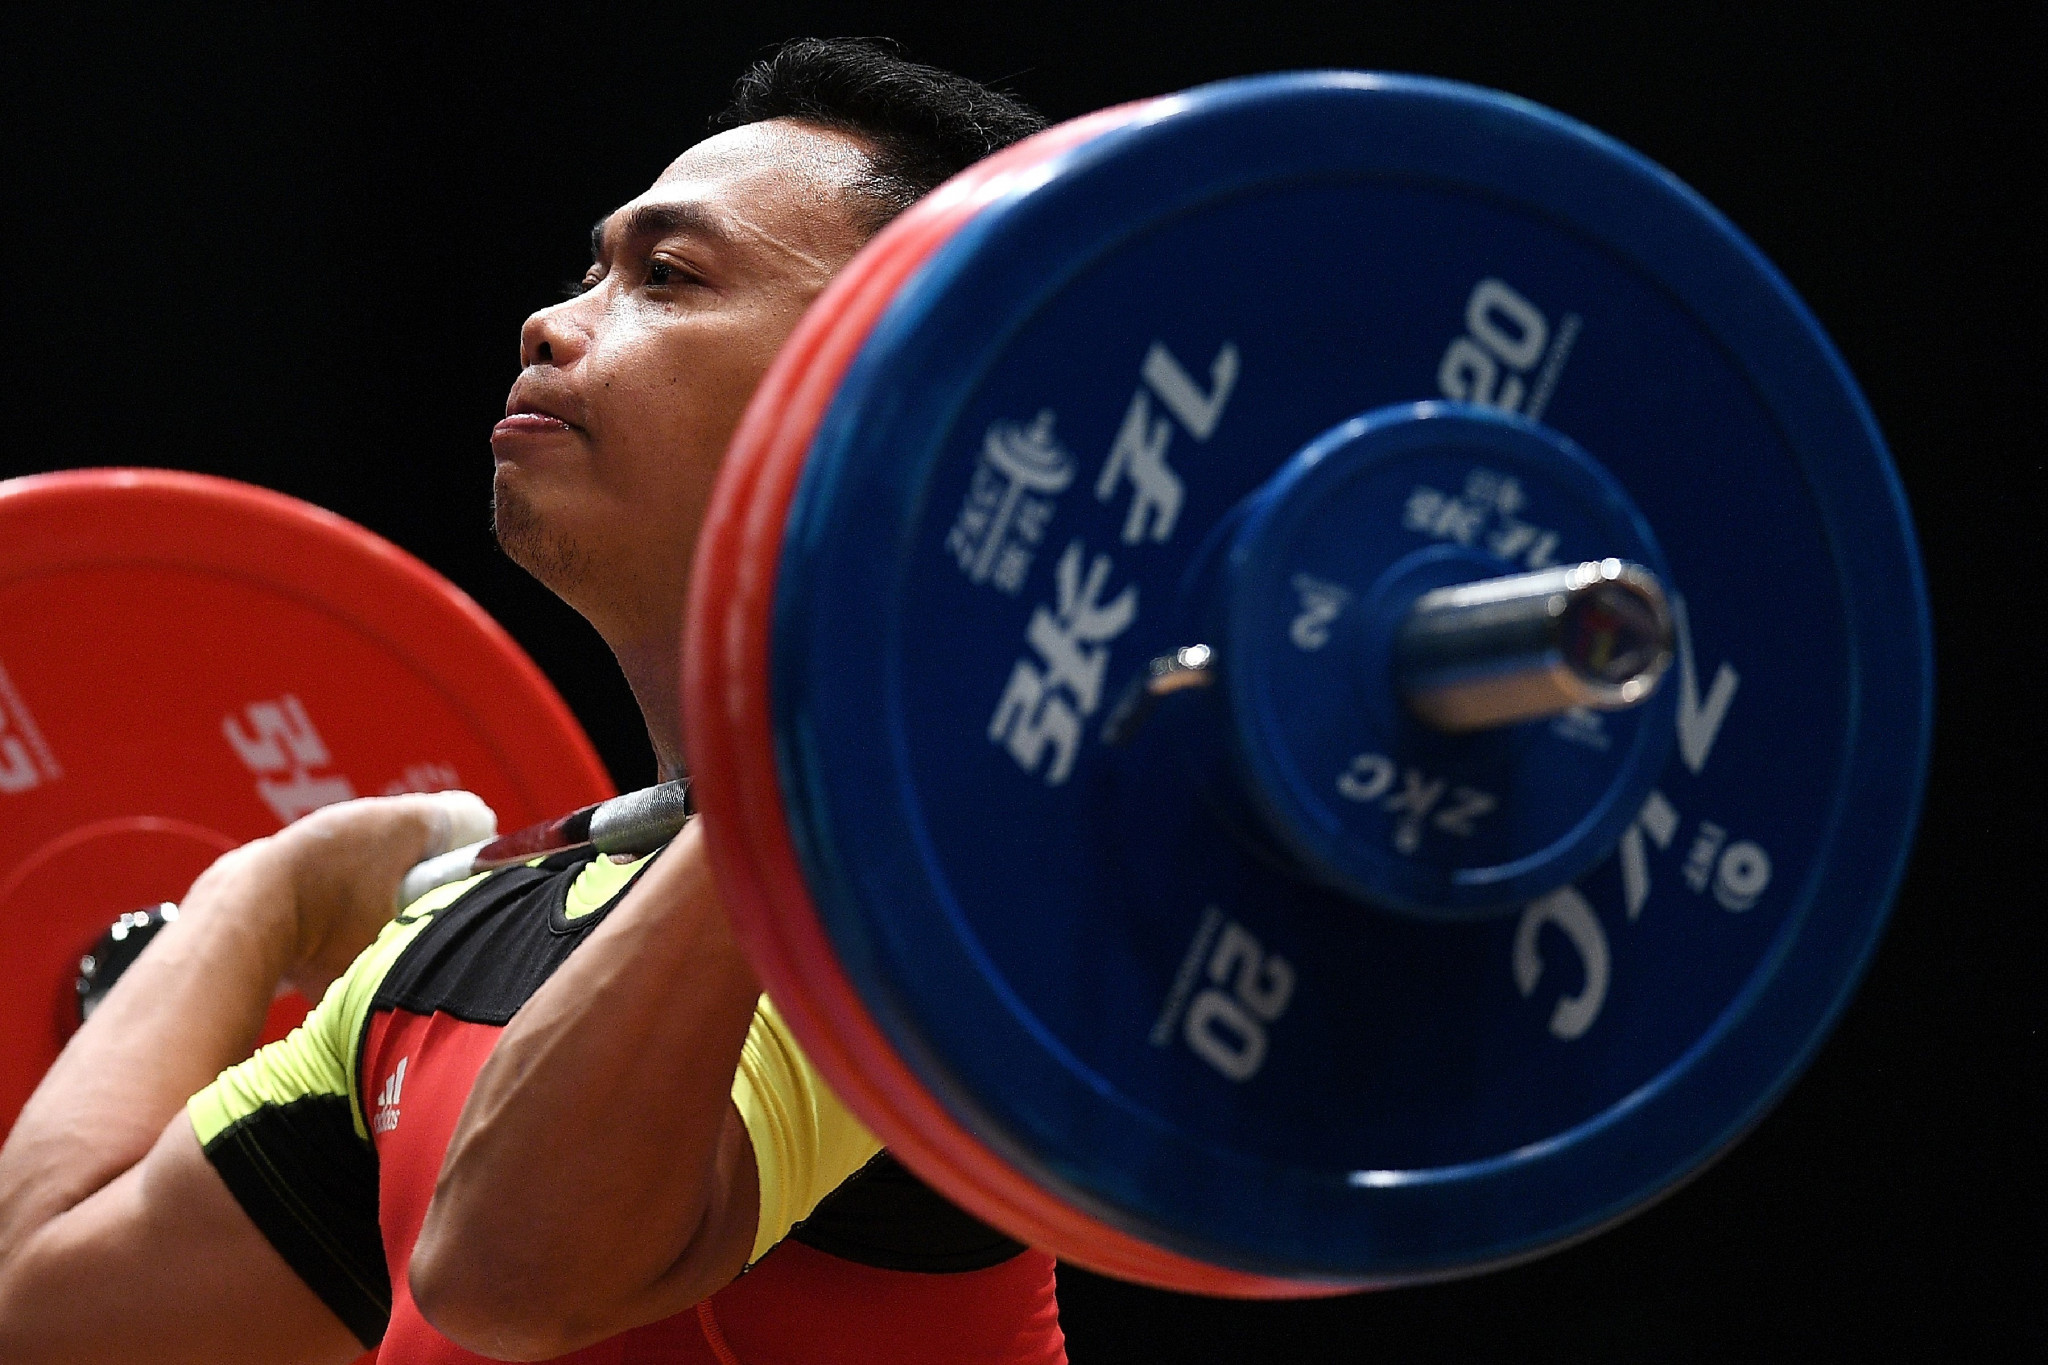 Eko Yuli Irawan has been a regular source of medals for Indonesia at major events ©Getty Images